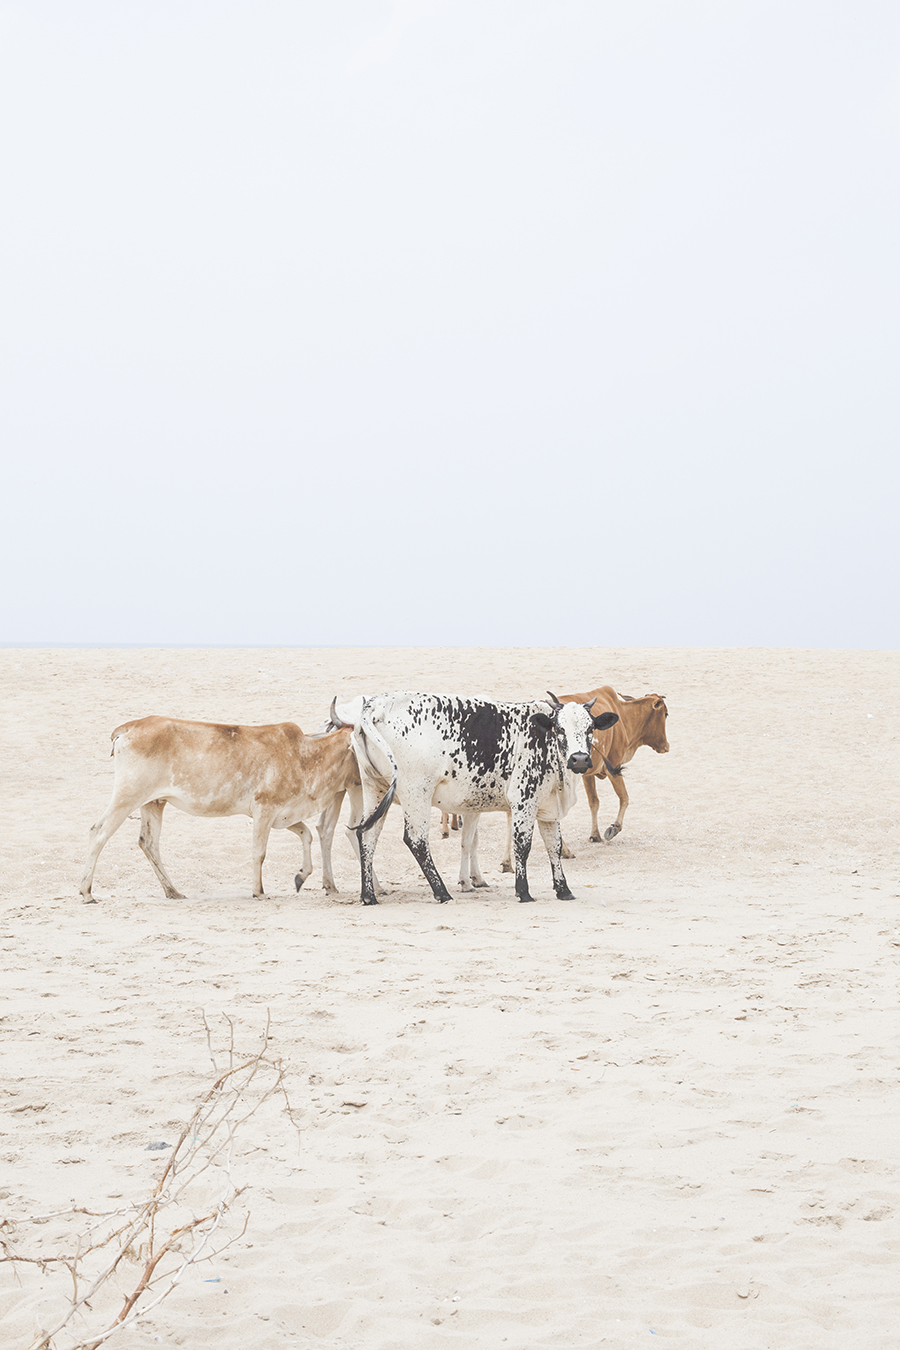 Cows on the beach in Chennai India.